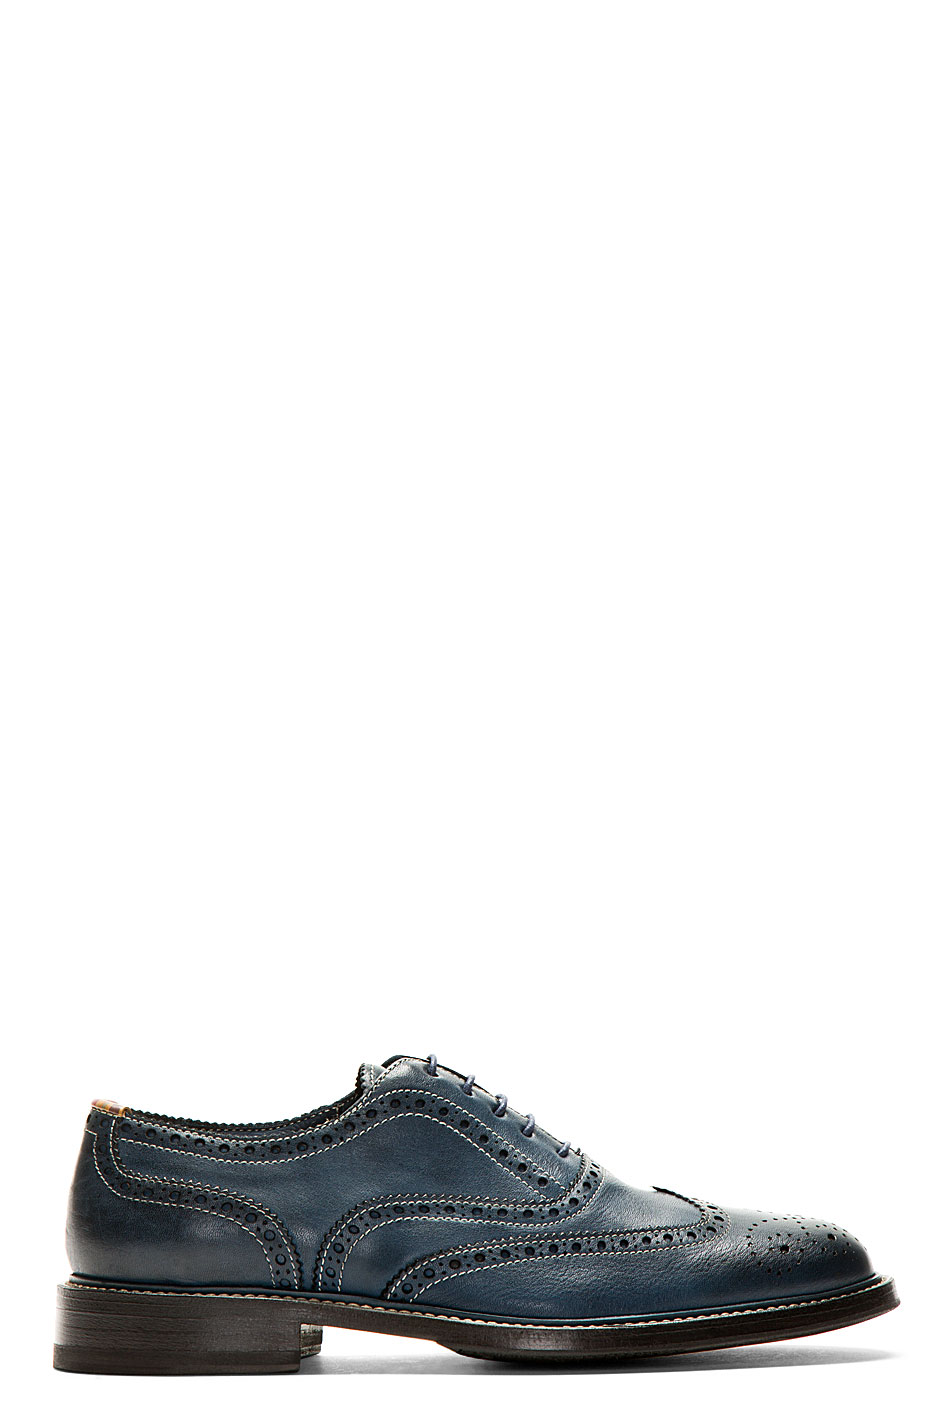 ps by paul smith navy knight oxford brogues